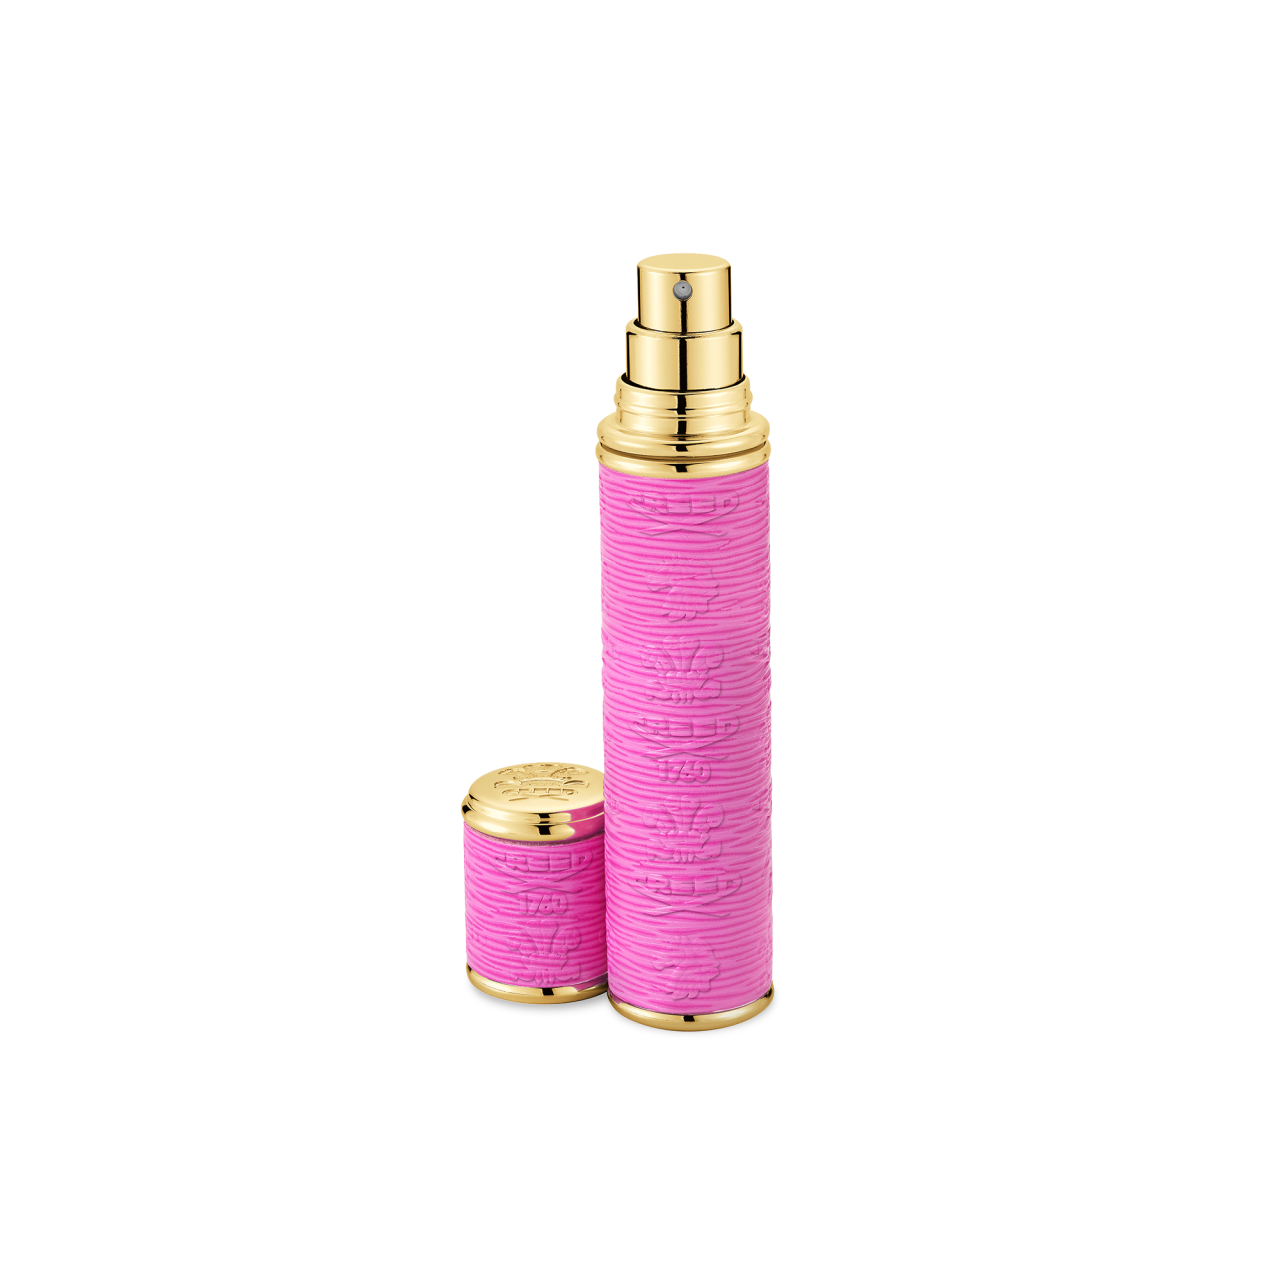 Dark Pink With Gold Trim Pocket Atomizer